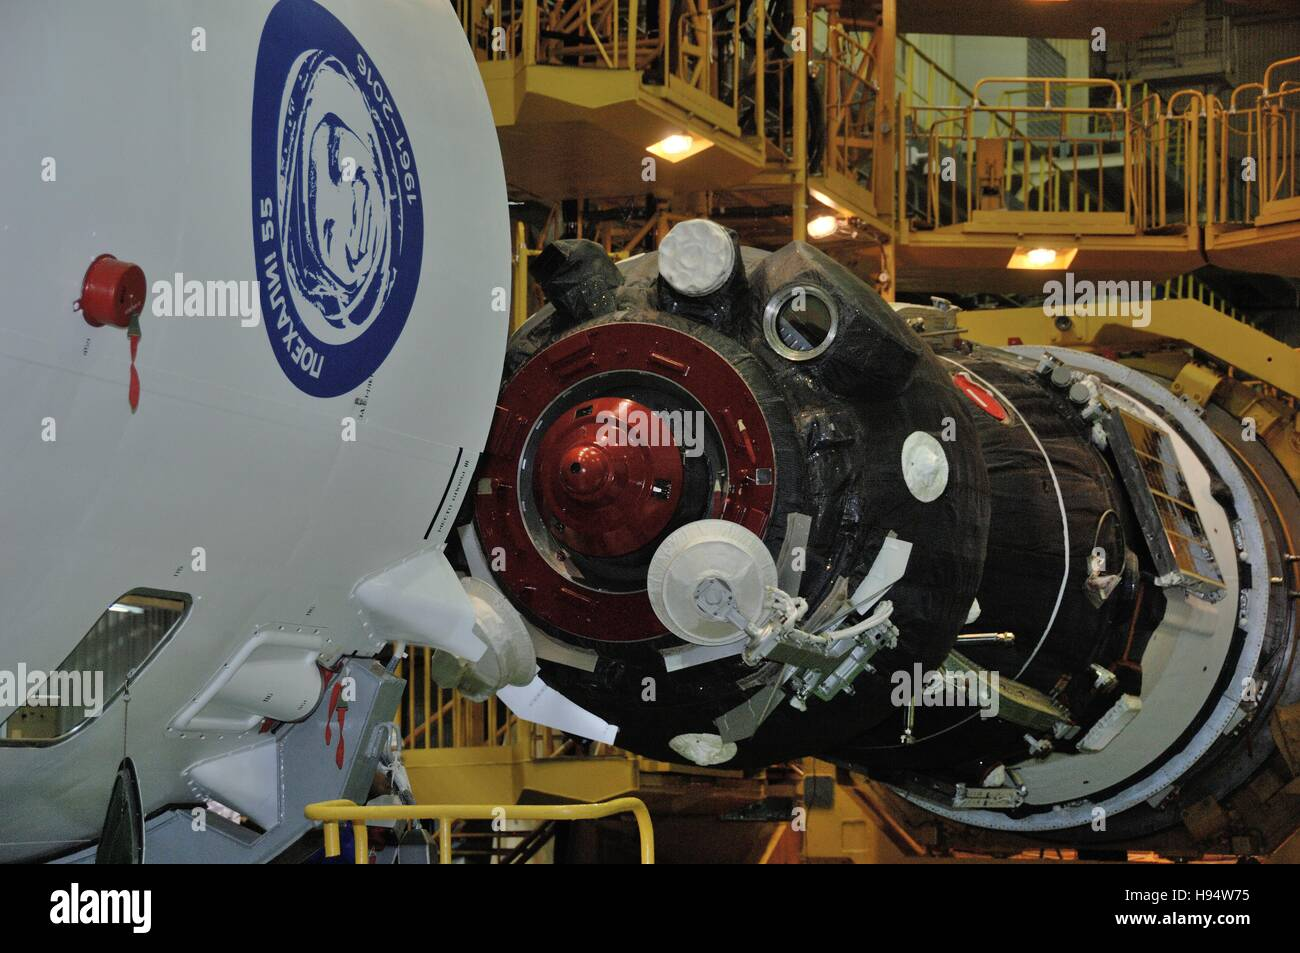 The Russian Soyuz MS-03 spacecraft is prepared for encapsulation for the NASA International Space Station Expedition - Stock Image